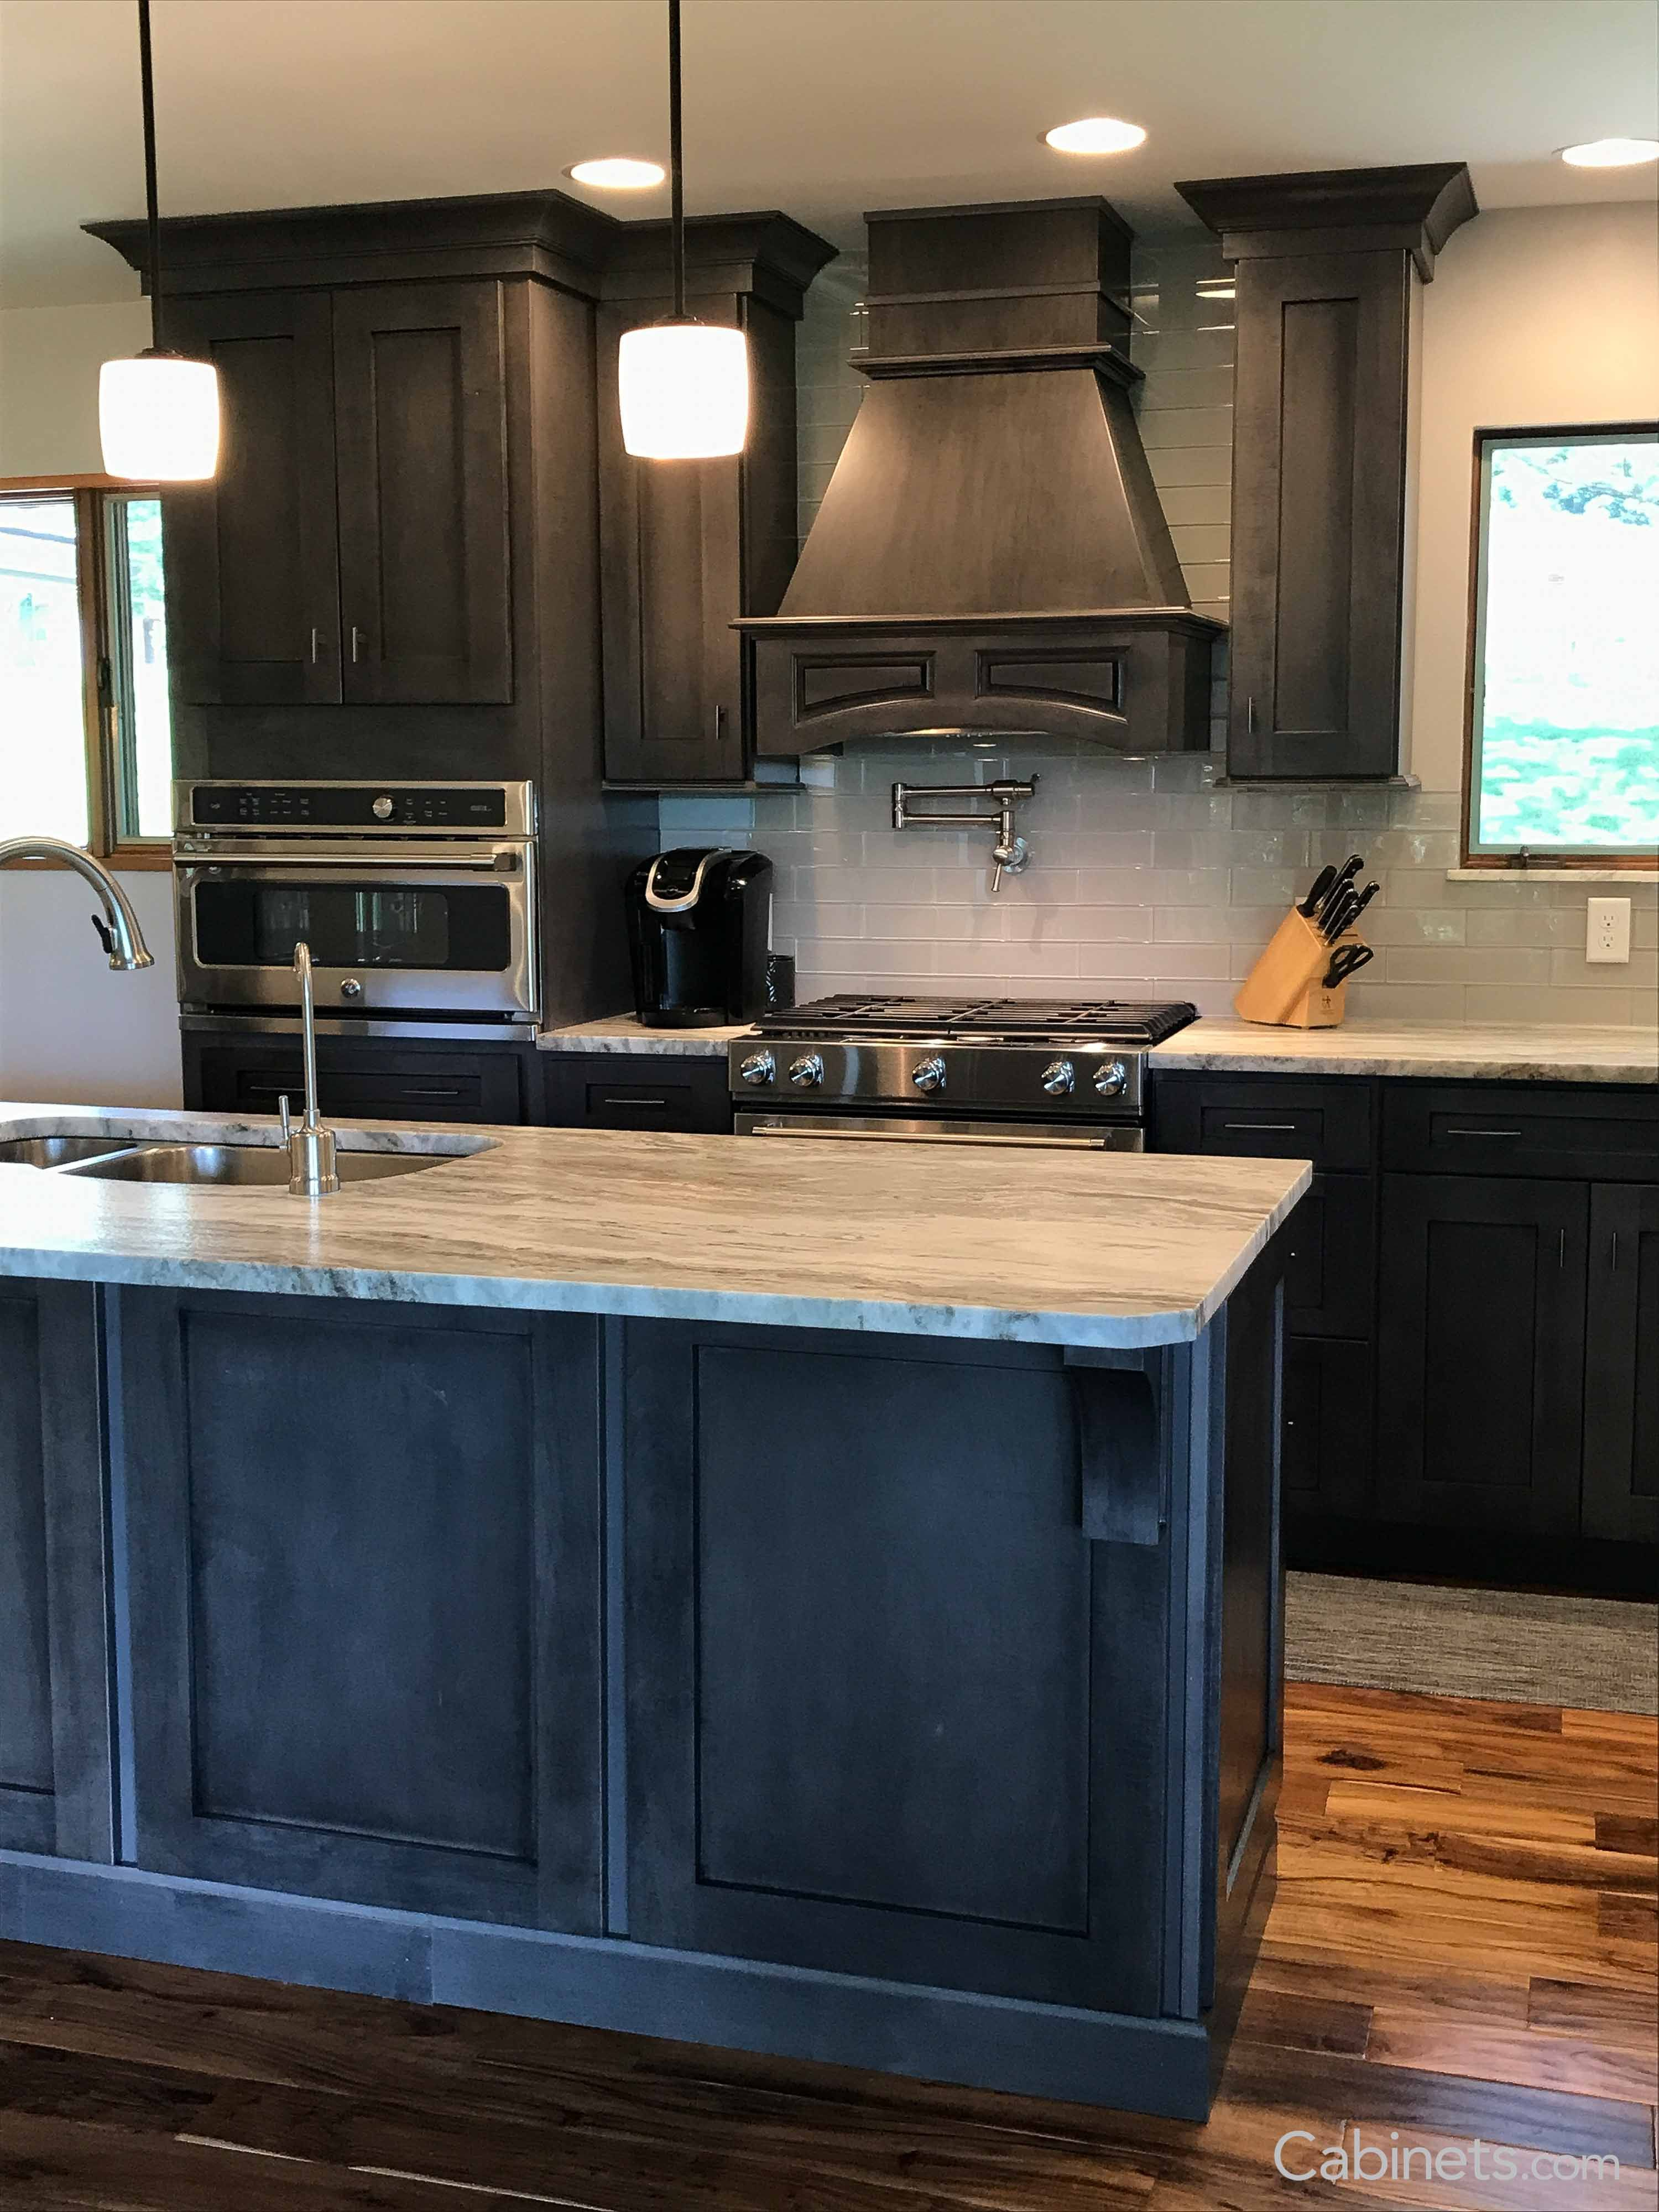 Shaker Maple Slate Cabinets For Your New Kitchen Slate Kitchen Craftsman Kitchen Cabinets Kitchen Cabinet Styles